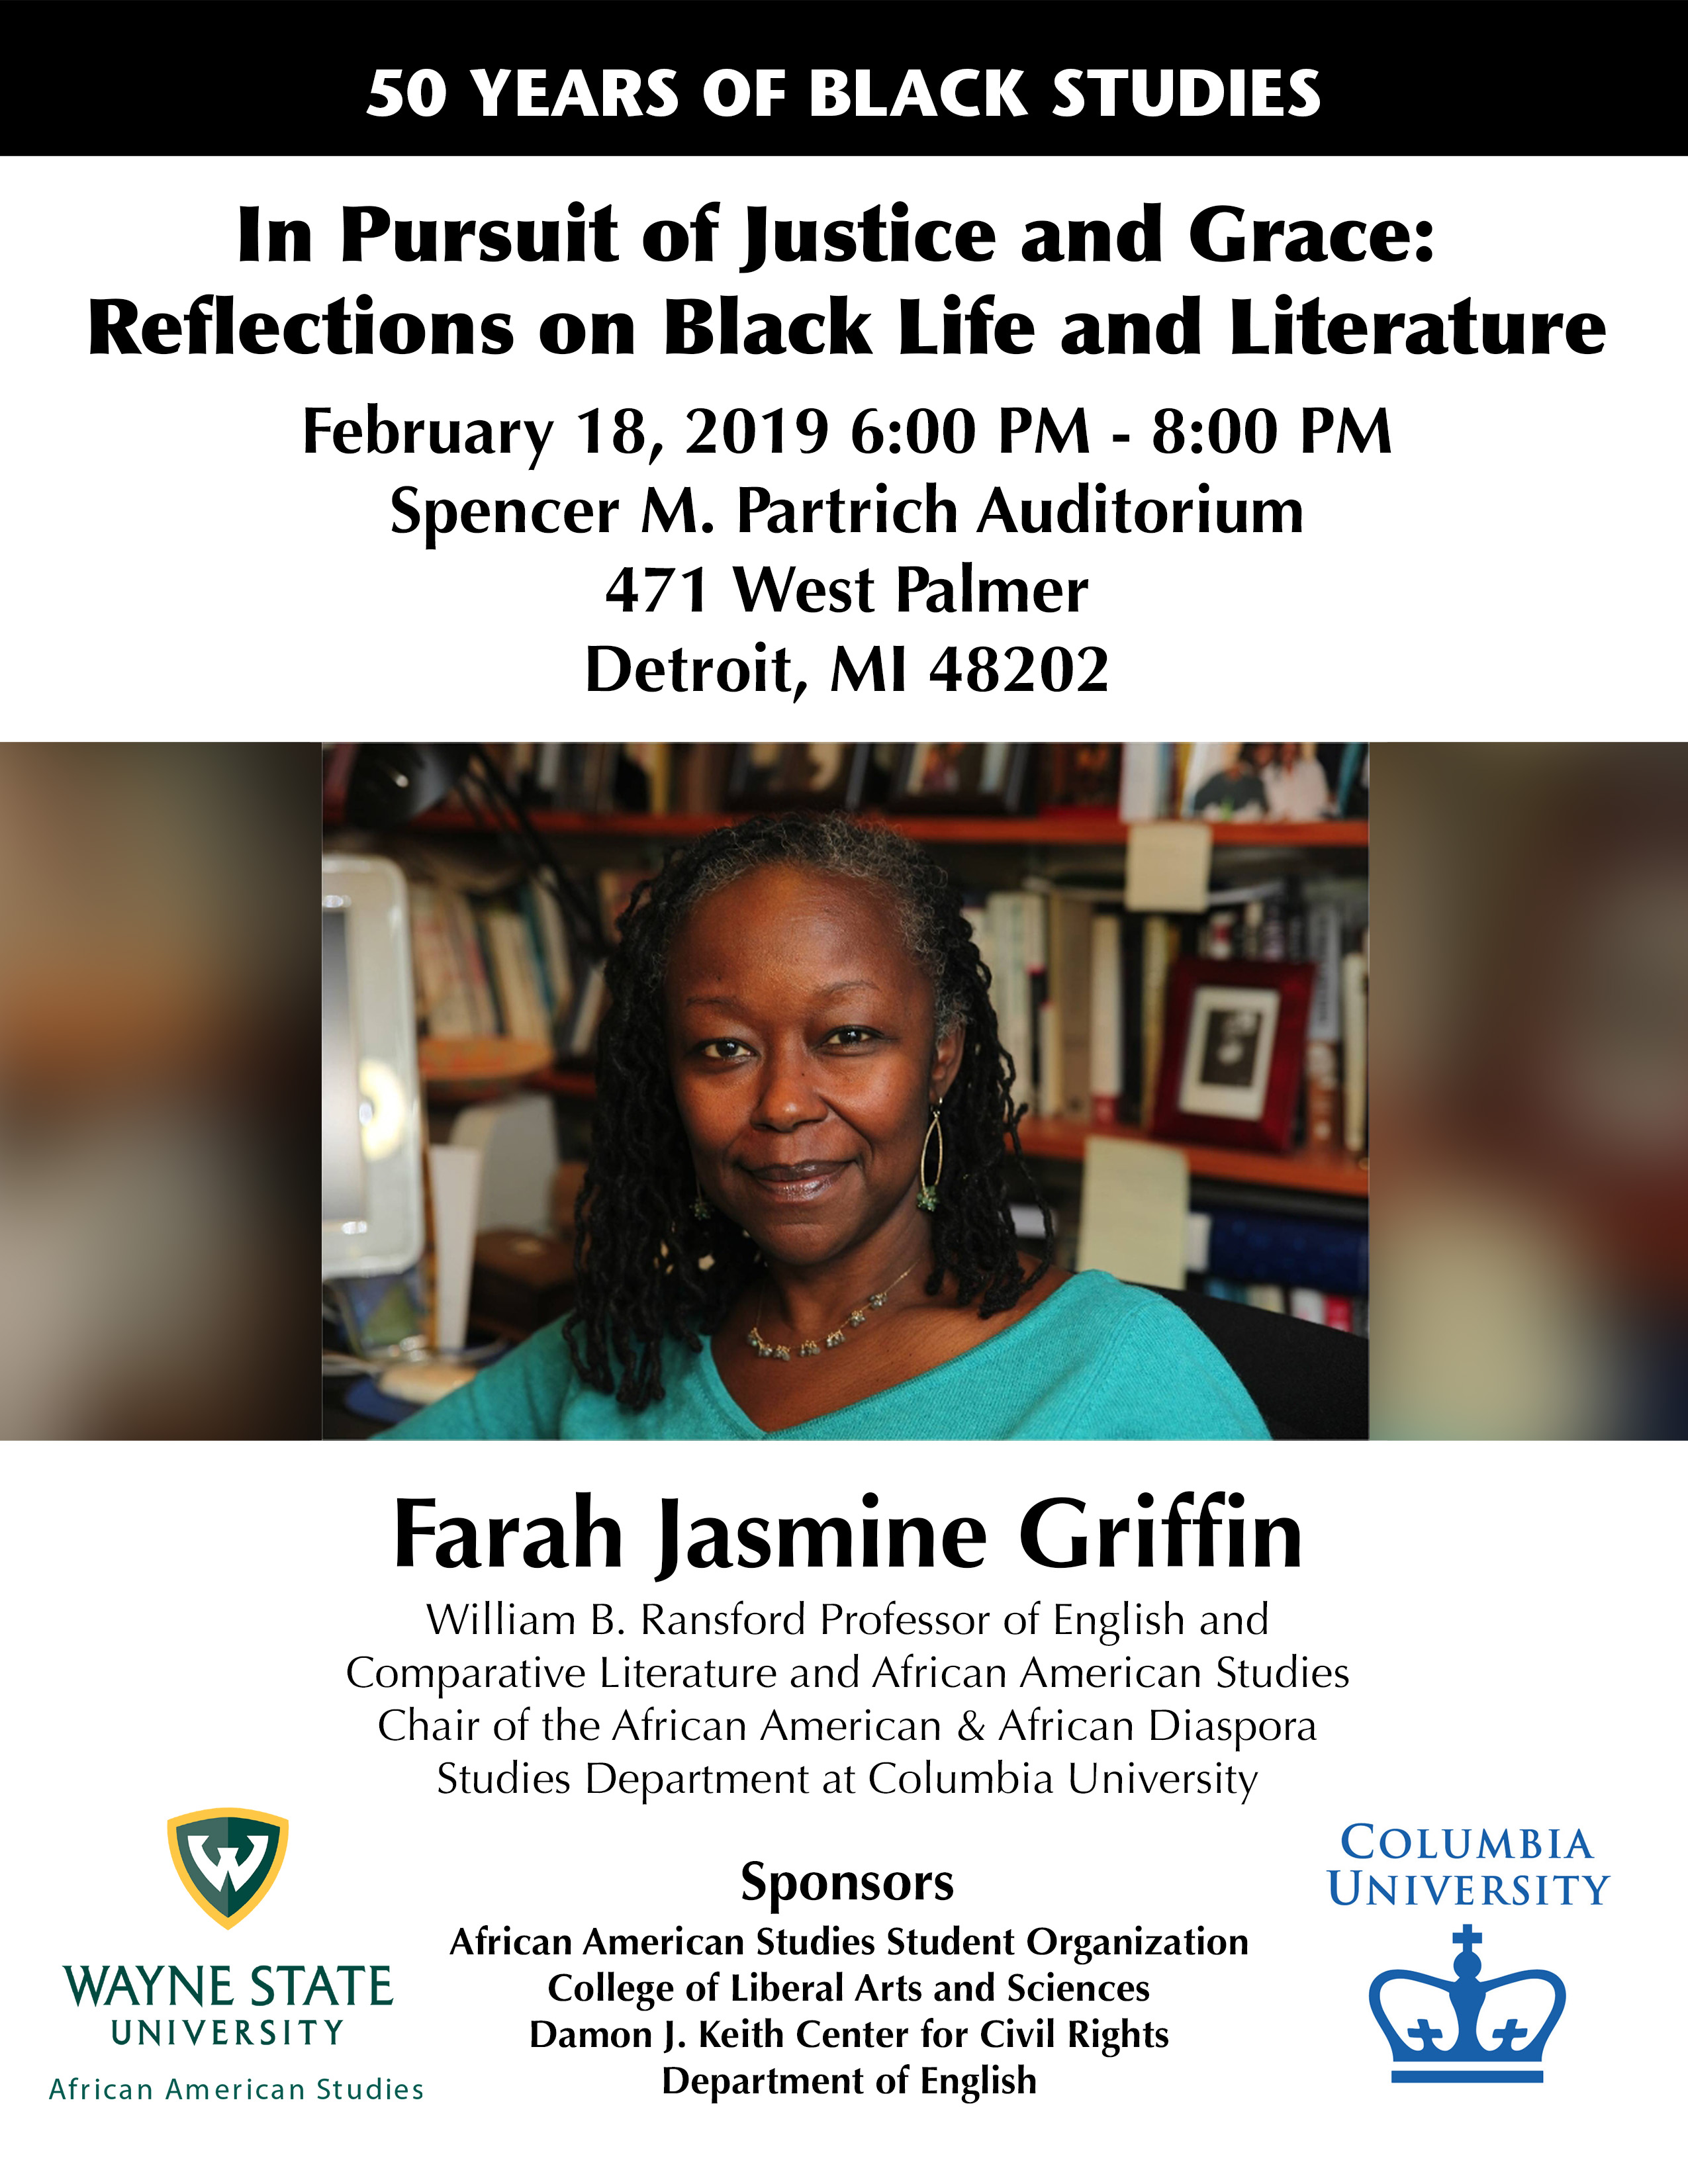 Flyer for Farah Griffin event, with portrait of the professor and event details.